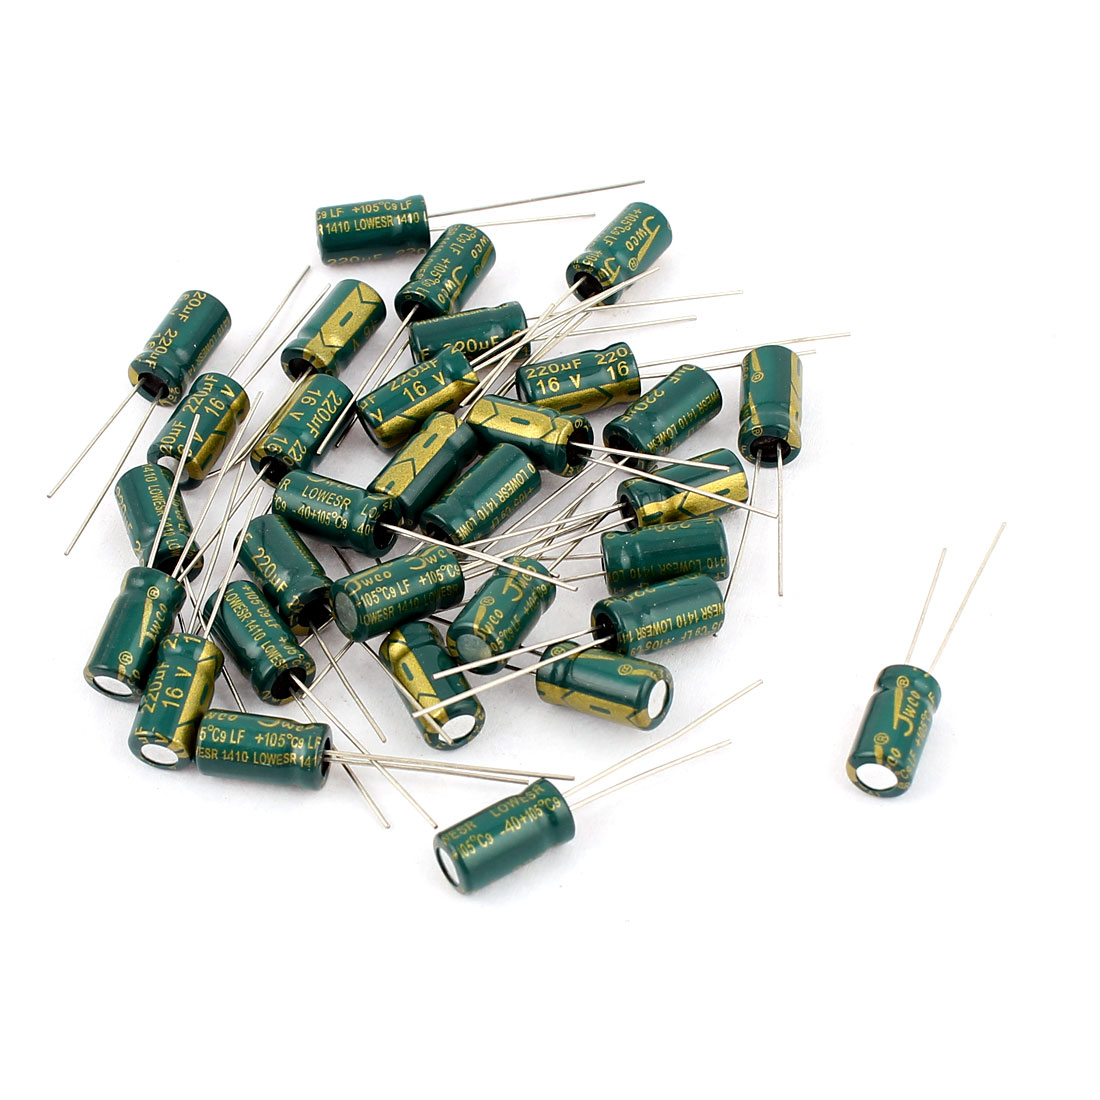 30pcs 6 x 12mm Cylindrical Radial Lead Electrolytic Capacitor 105C 220uF 16V